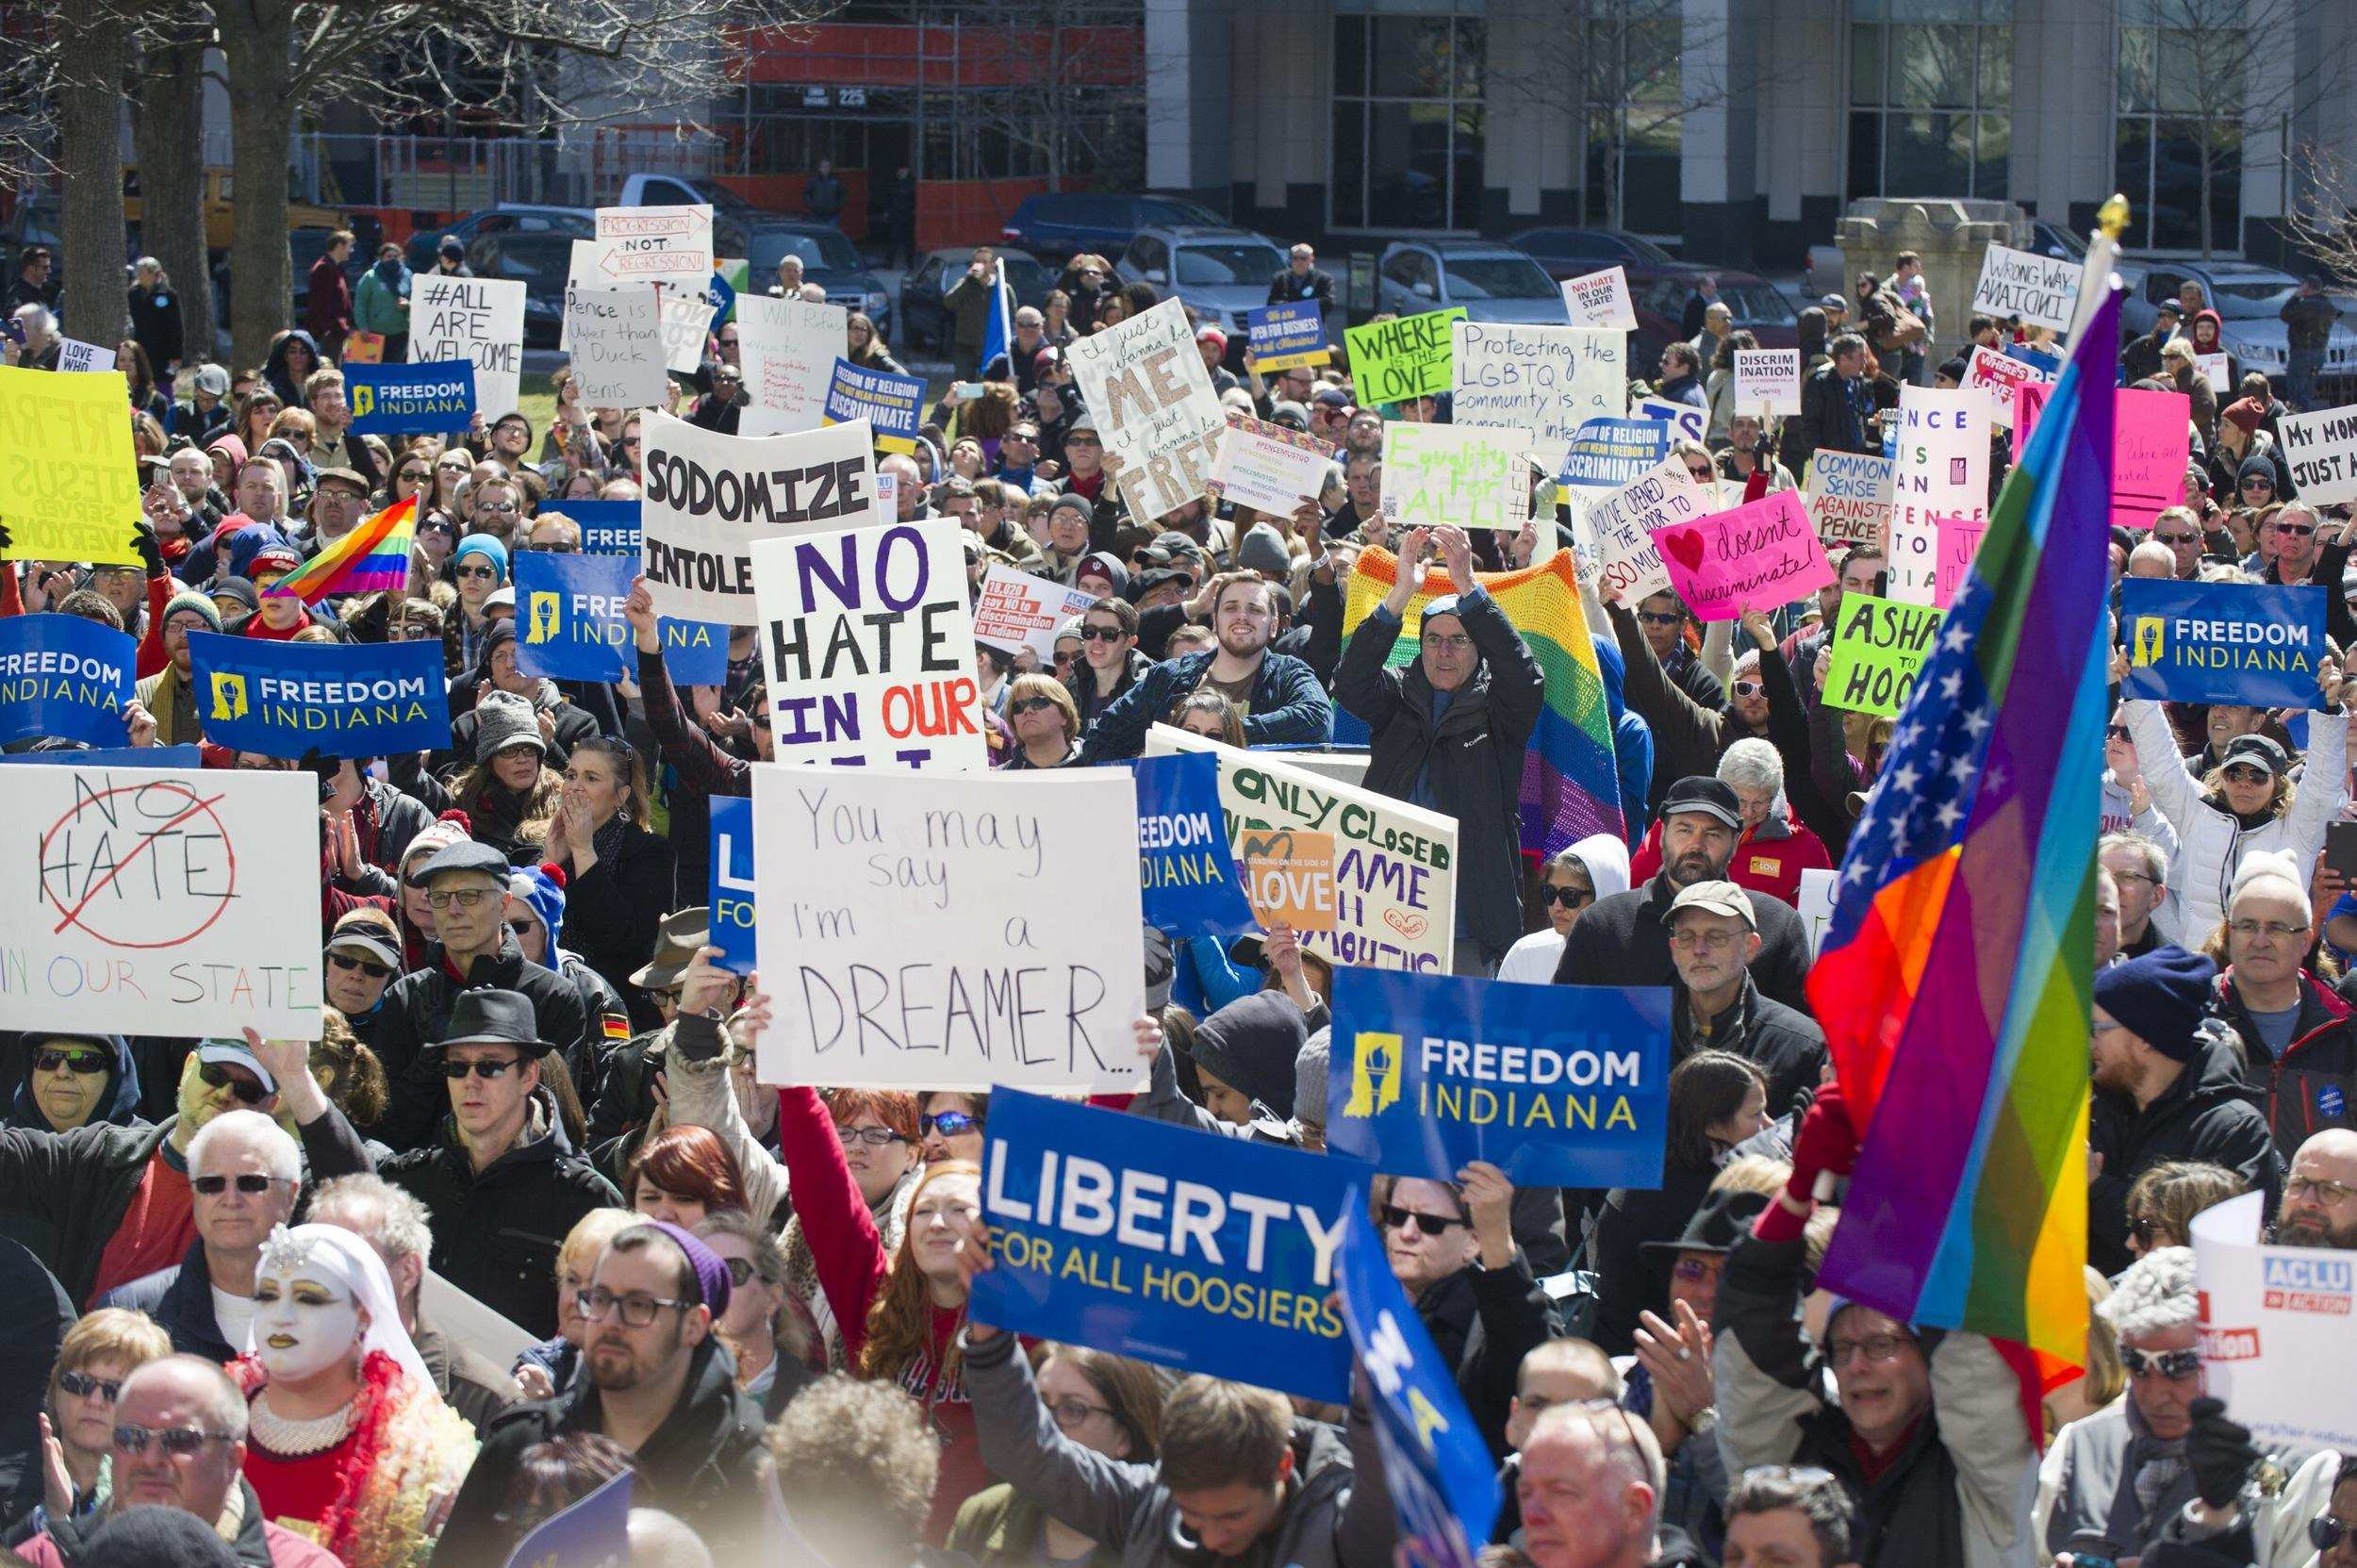 Hundreds Protest Indiana's 'Religious Freedom' Law